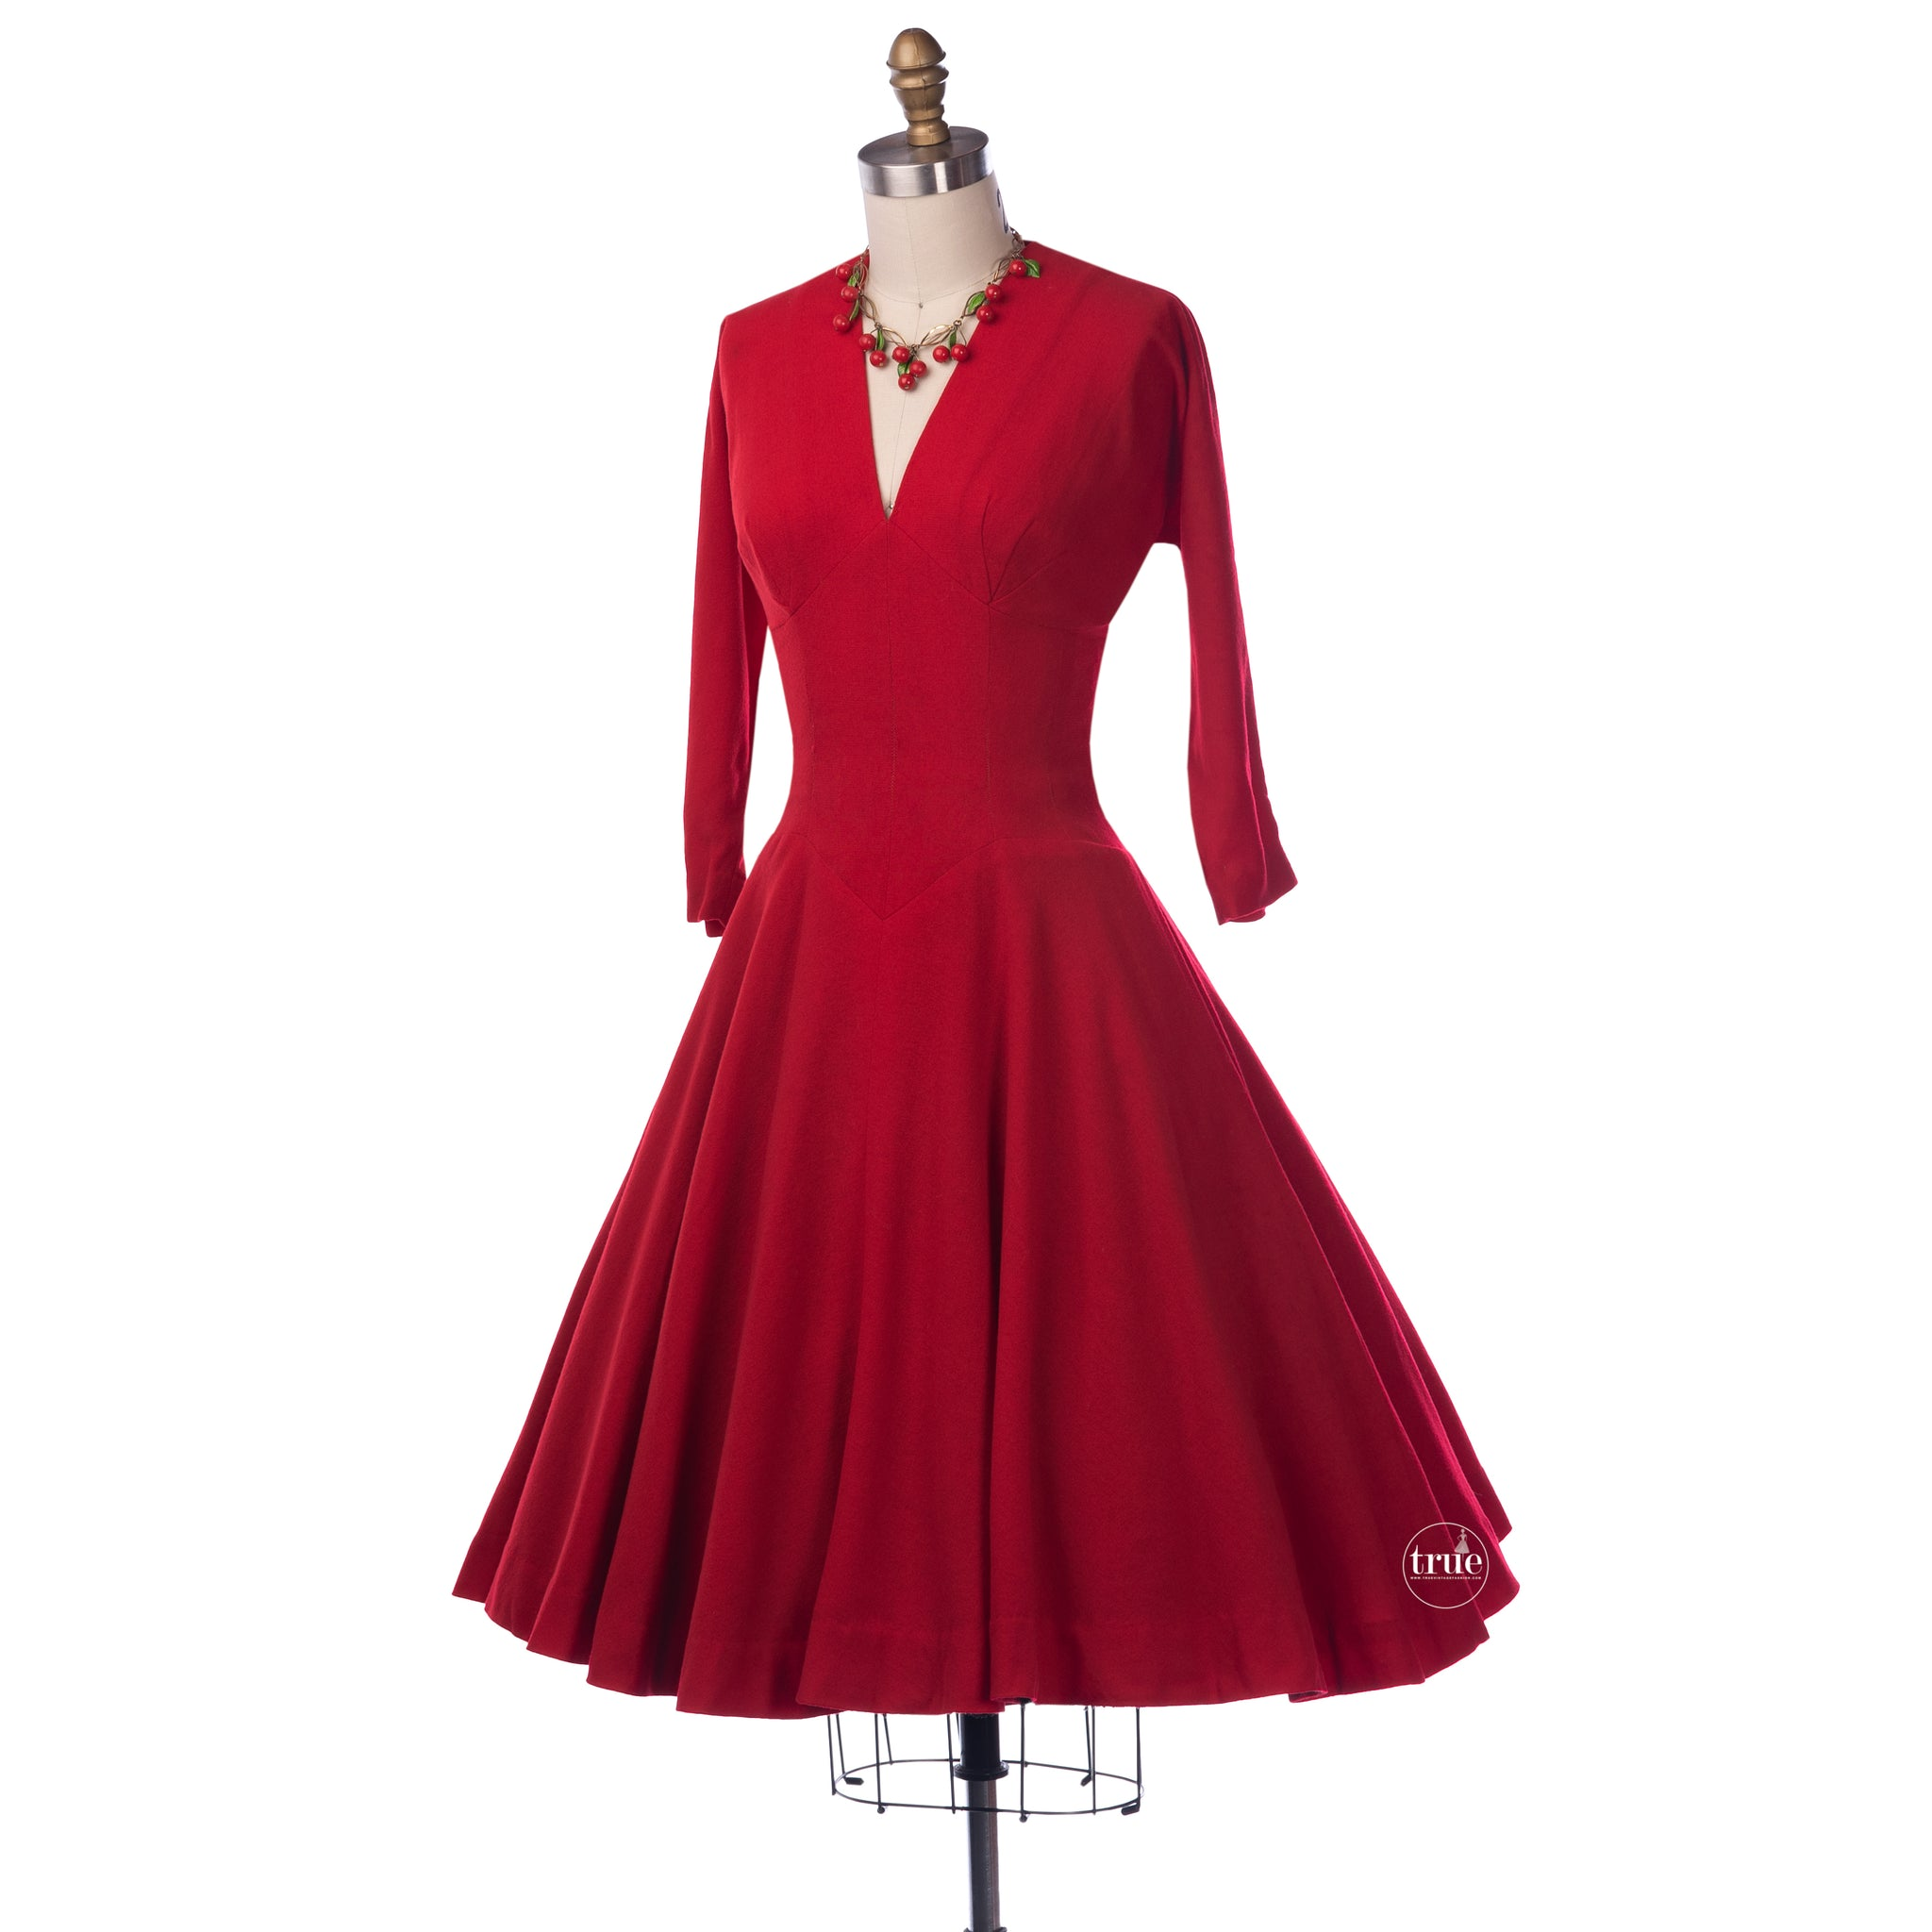 617cea3a2d4da Lord And Taylor Red Cocktail Dresses - raveitsafe